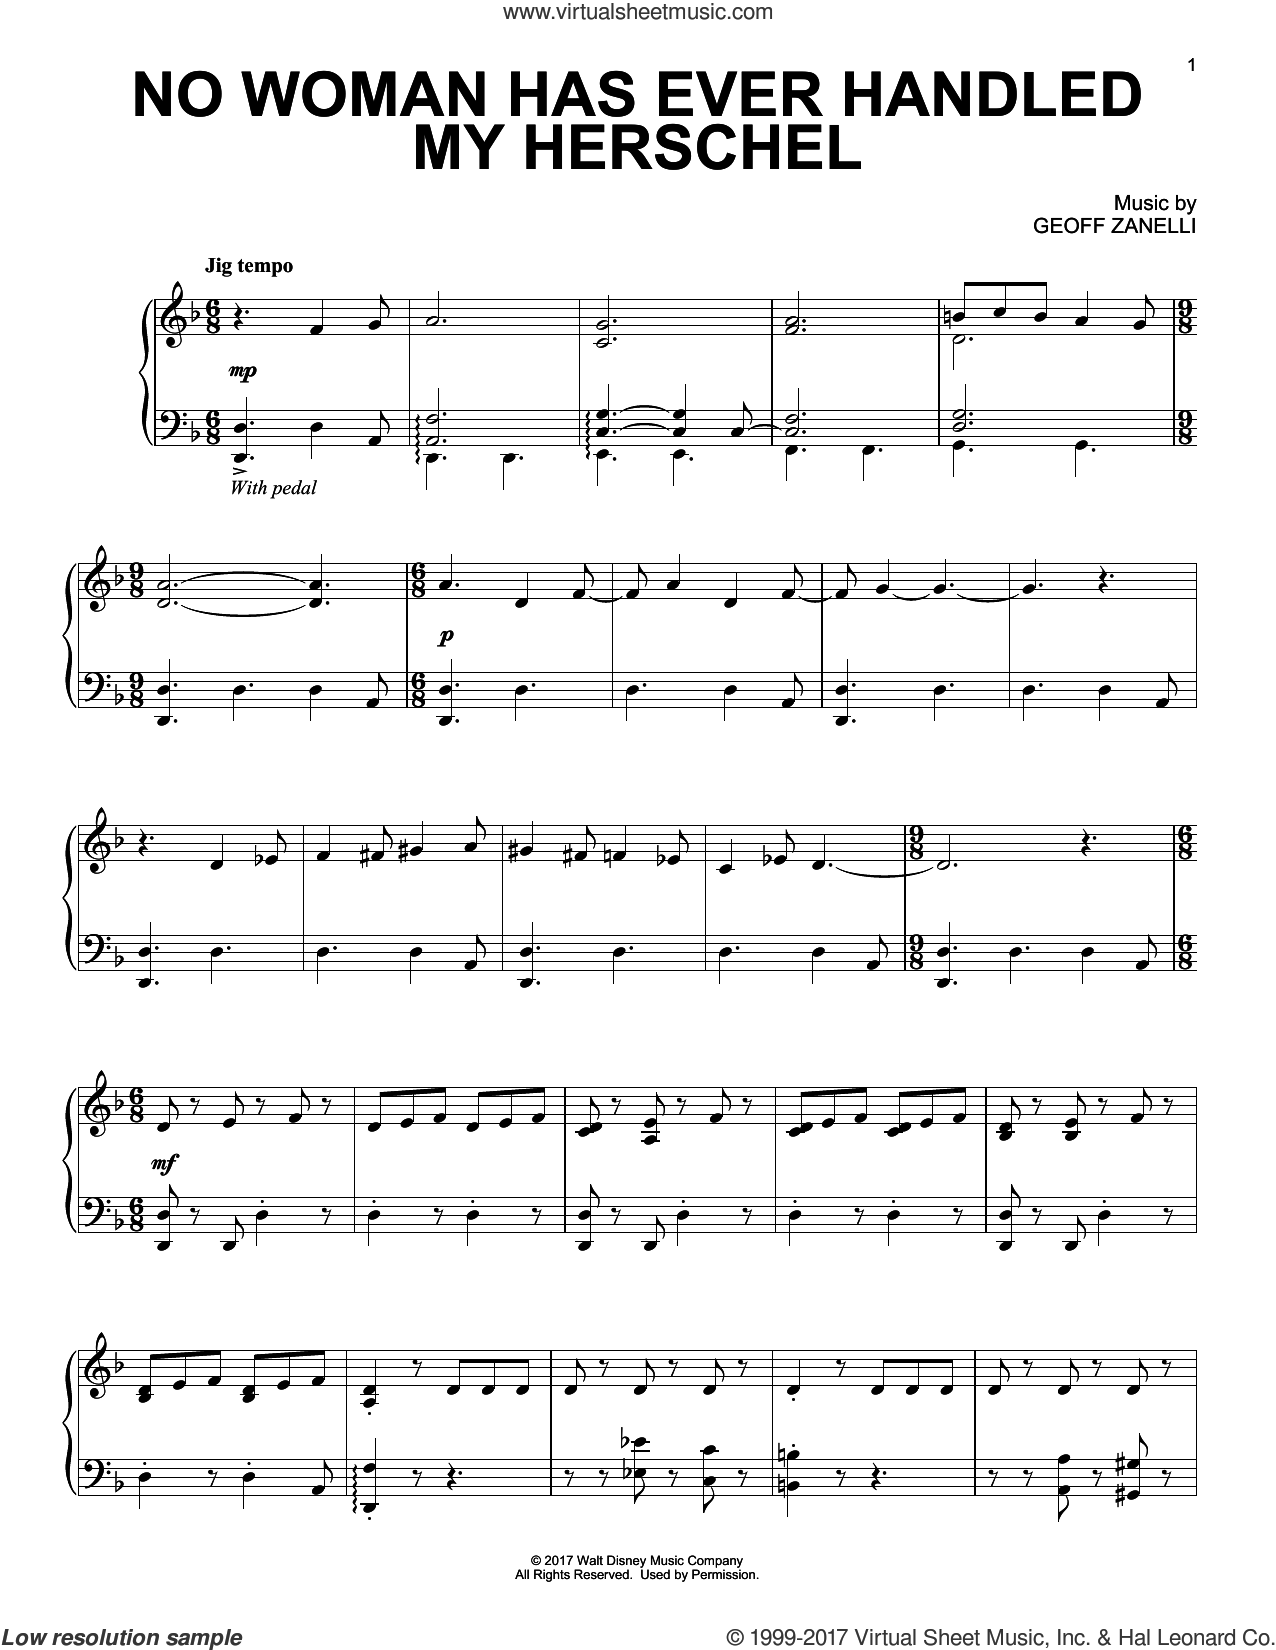 No Woman Has Ever Handled My Herschel sheet music for piano solo by Geoff Zanelli, intermediate